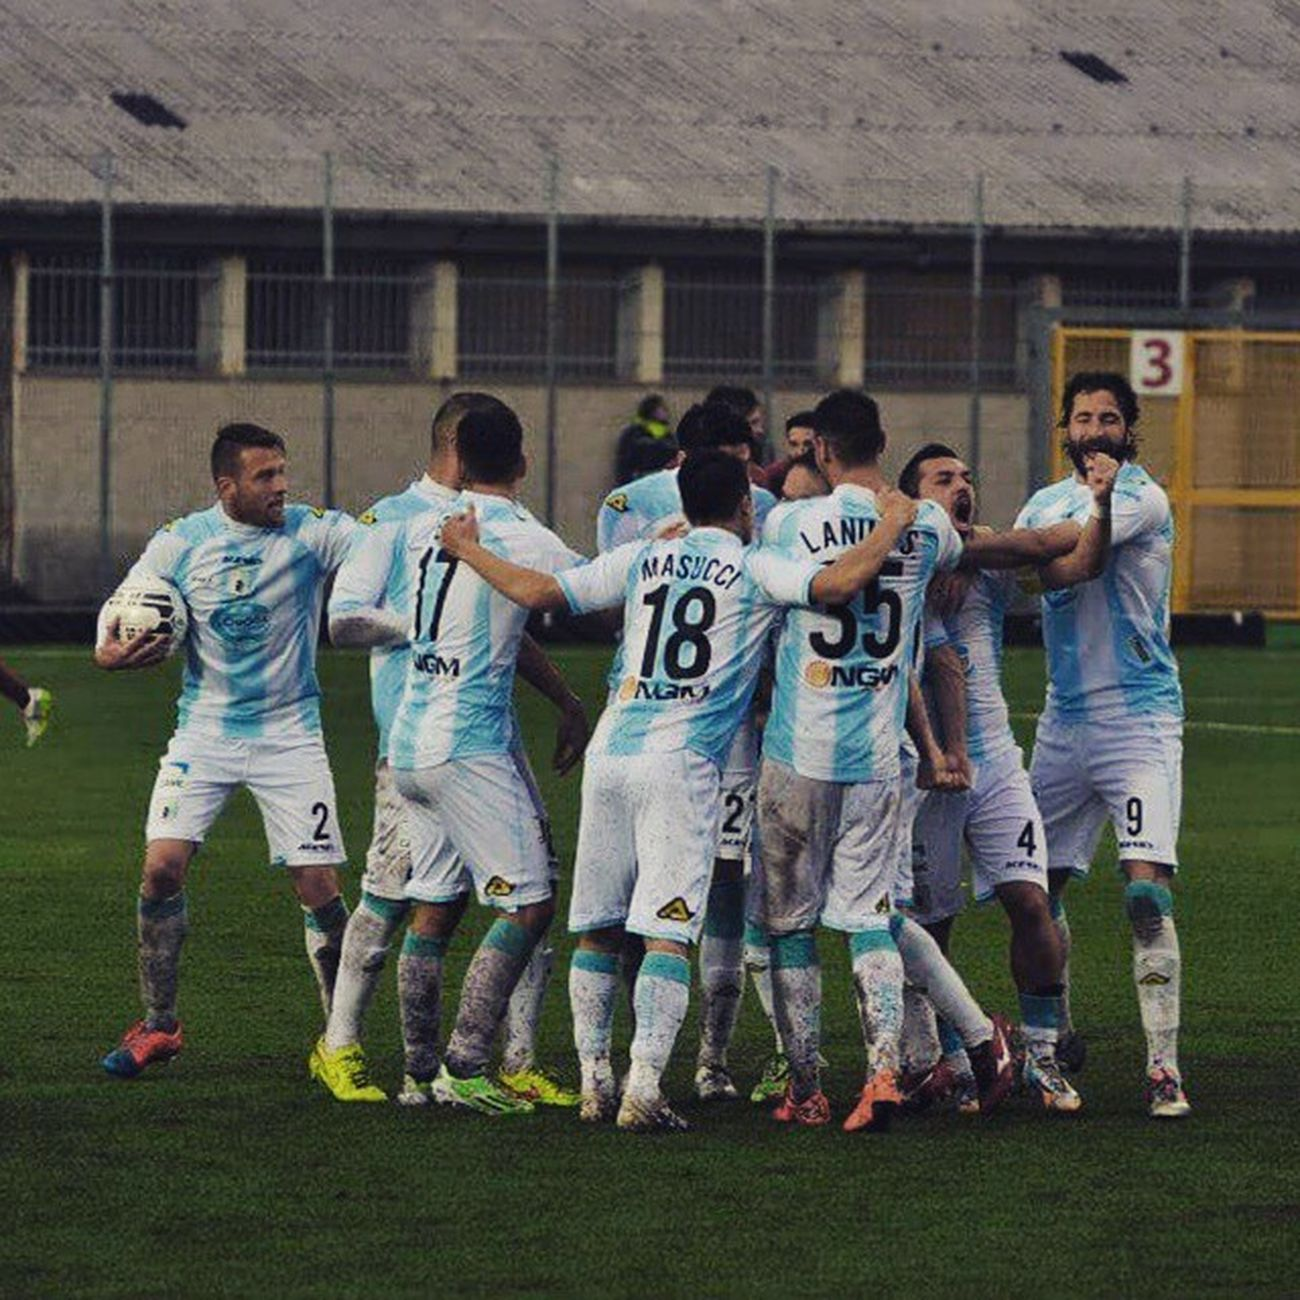 Goal EntellaTrapani Entella Forzaentella comunale chiavari serieB football photooftheday picoftheday bestpics picsoftheday webstagram rivieraligure instagram igerschiavari igers webstagram SquareInstaPic